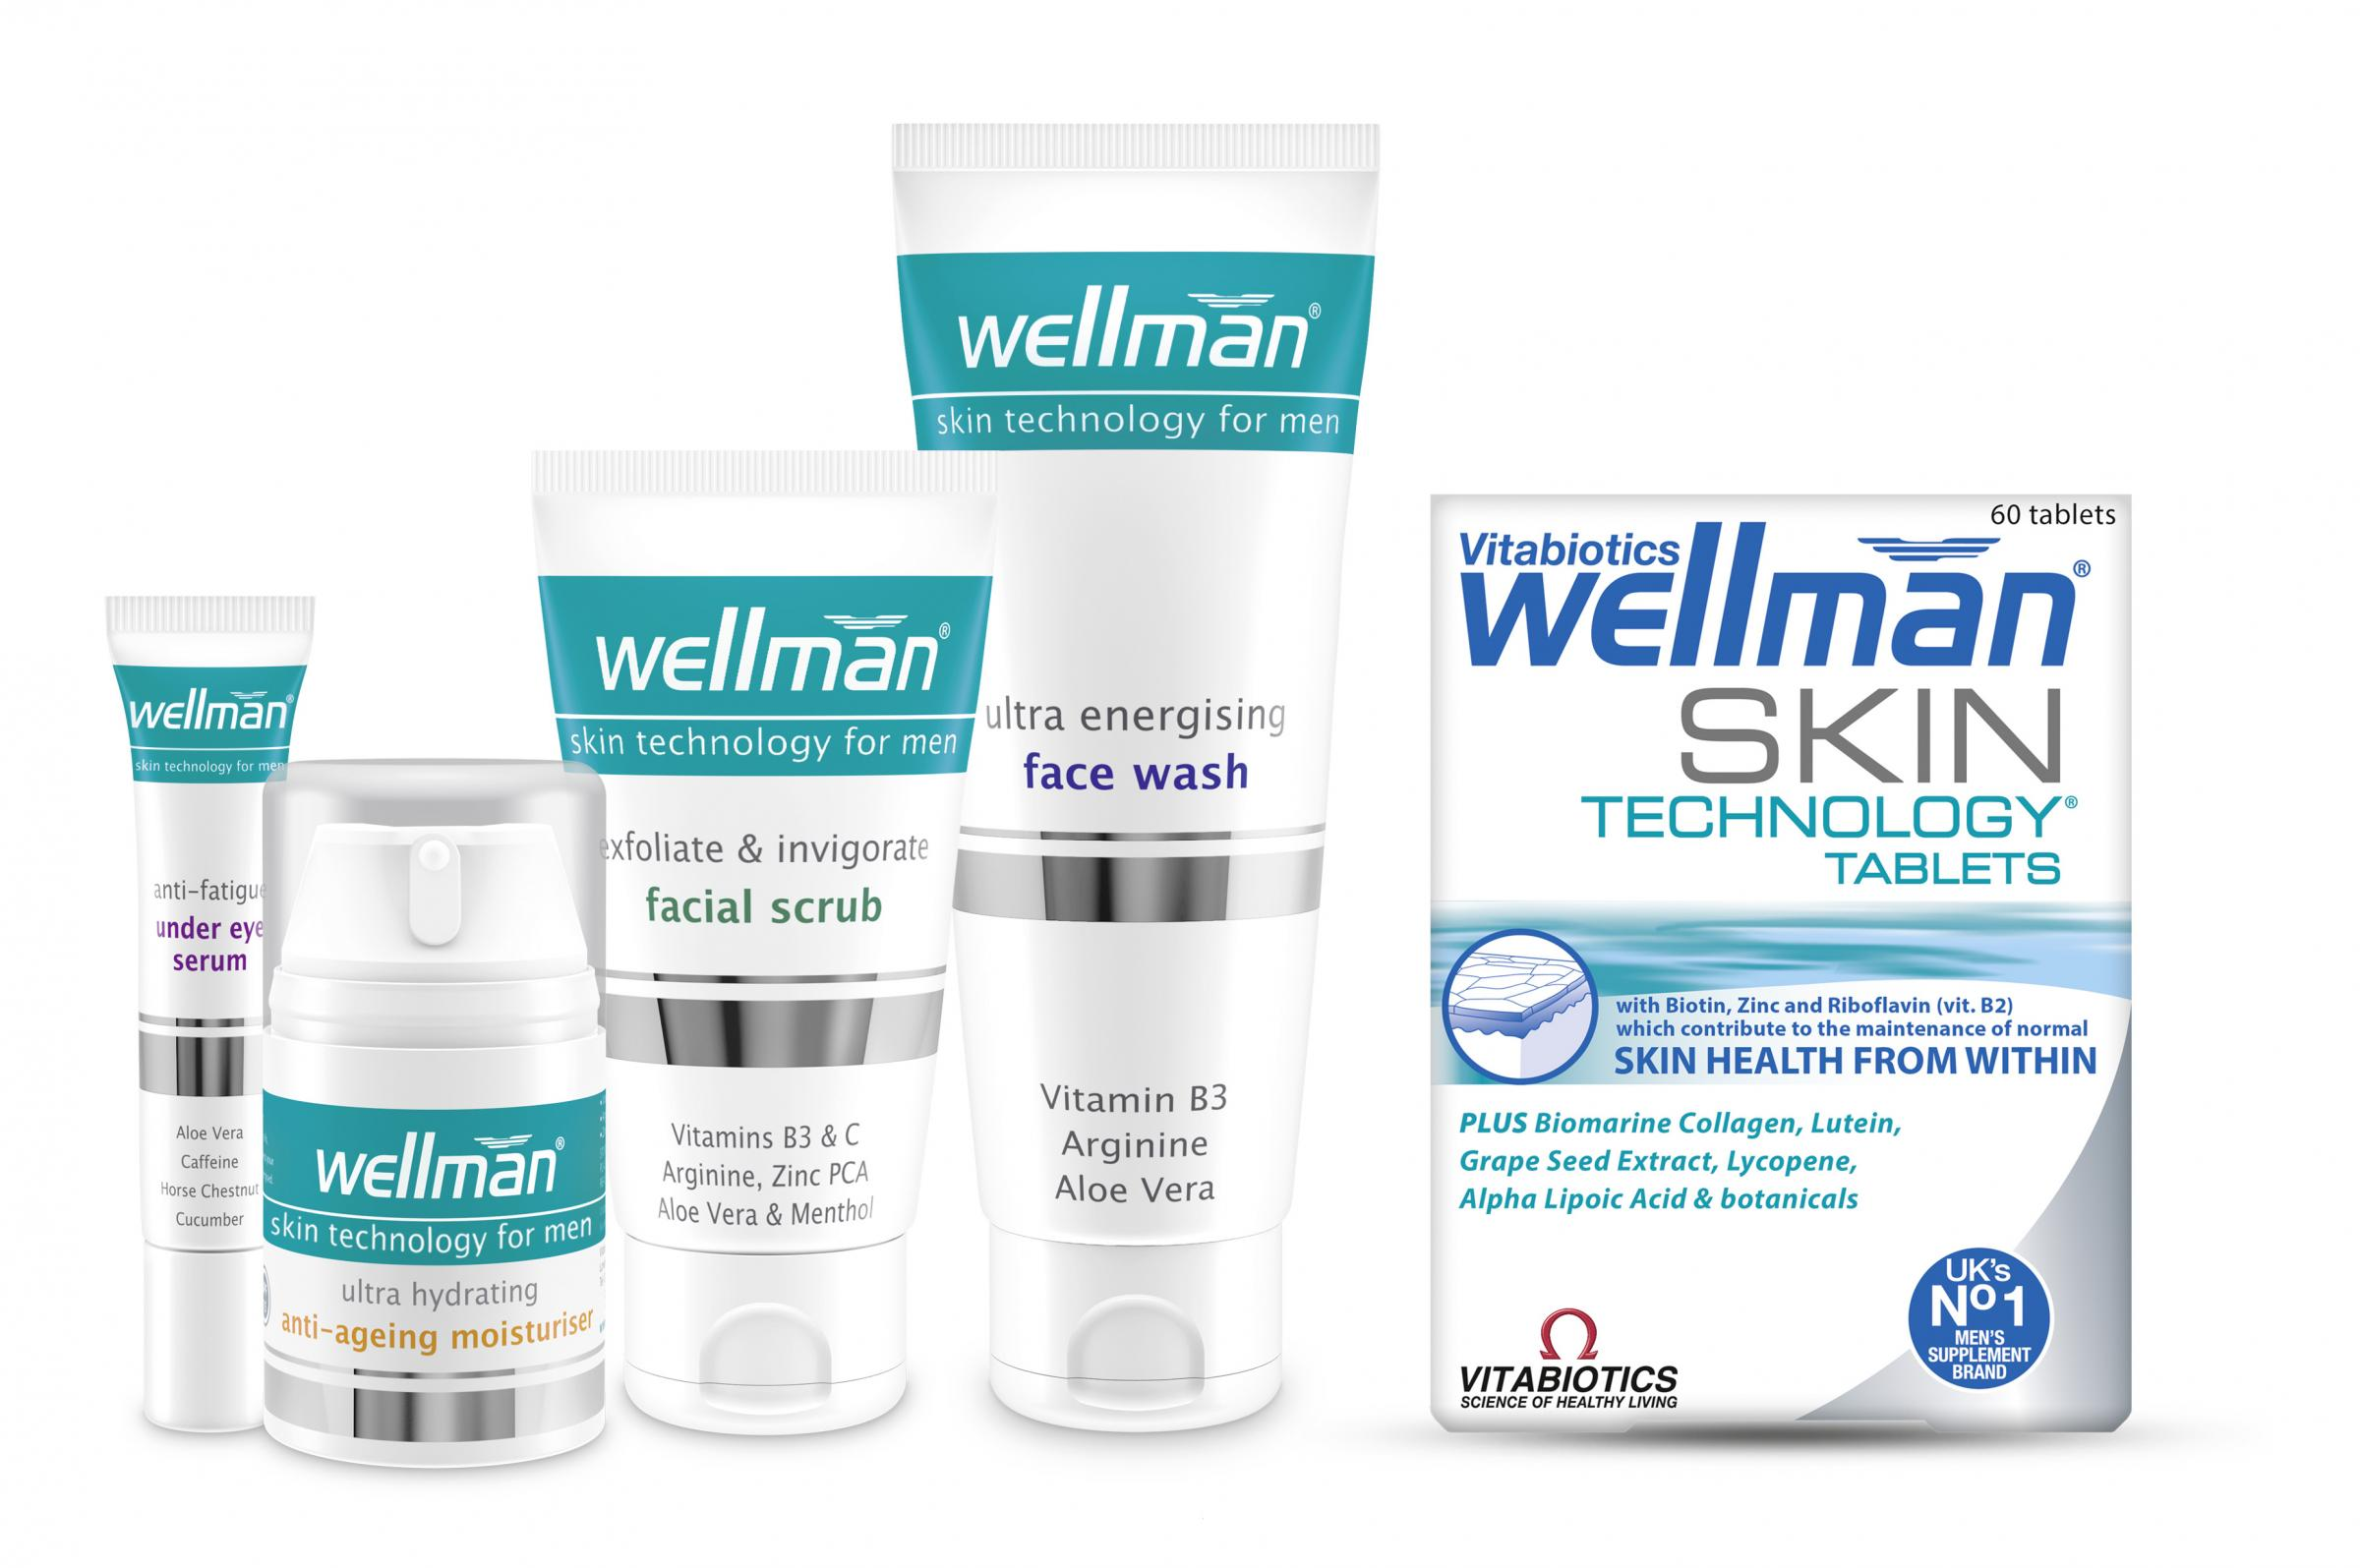 WIN Wellman skincare products and vitamins for Father's Day